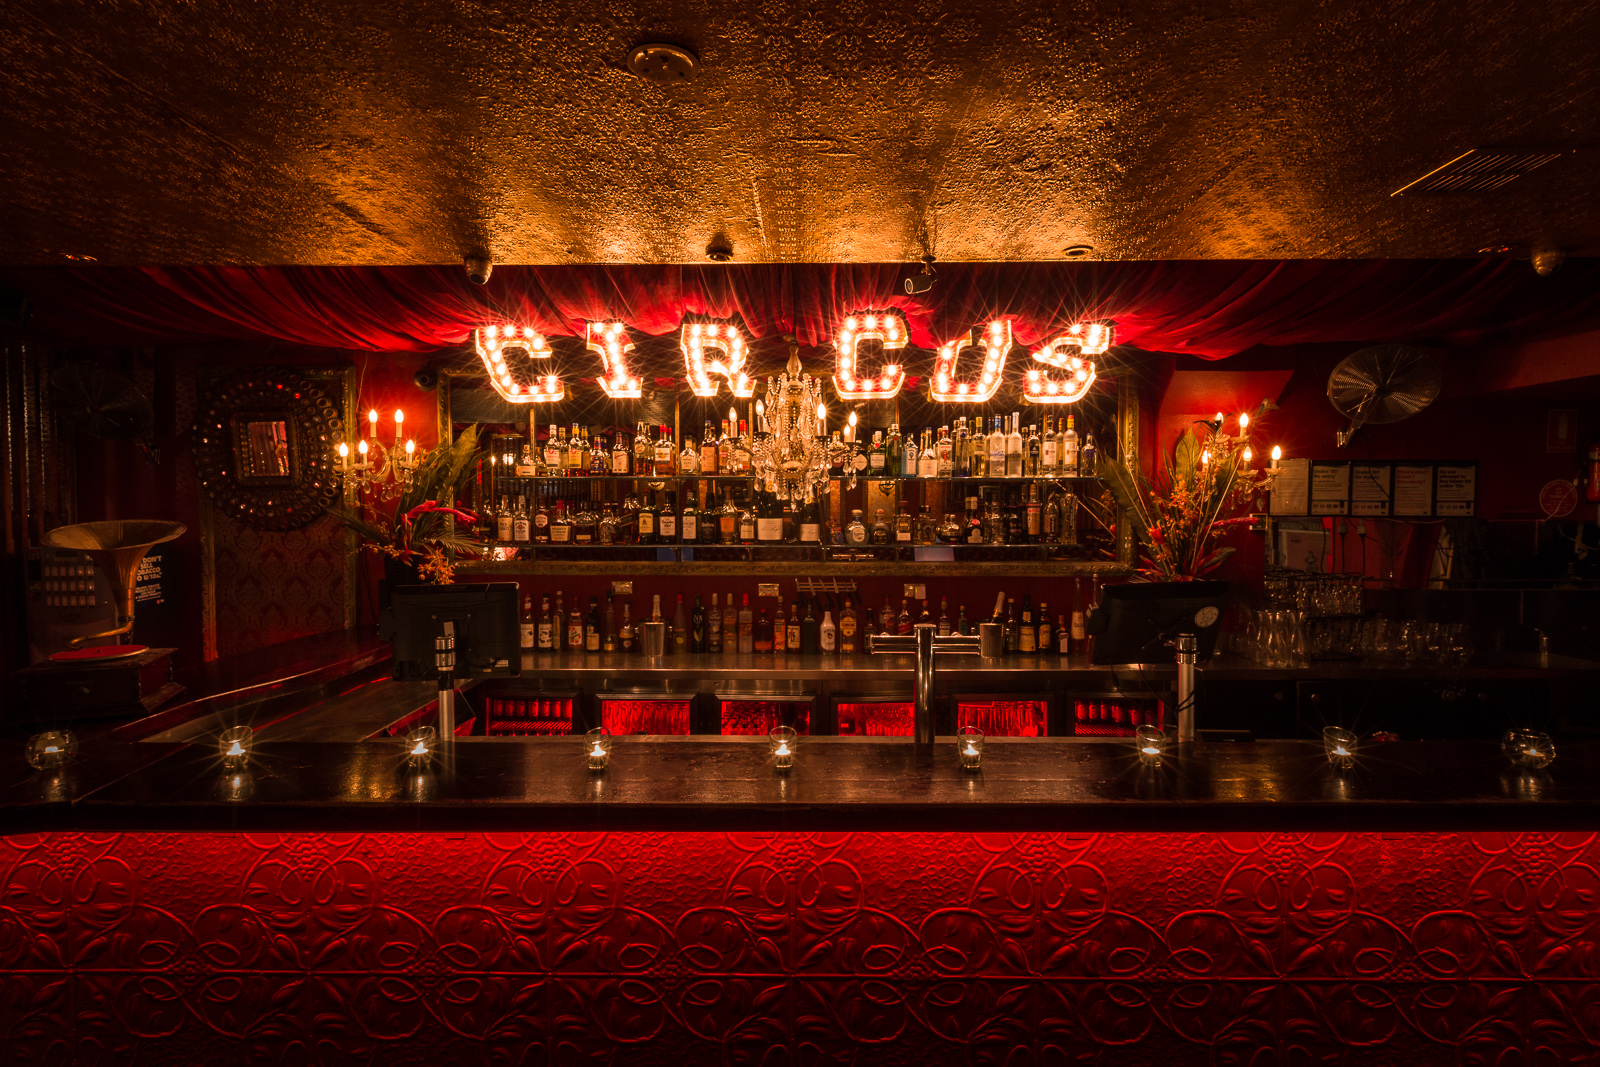 Circus Bar_Low Res_Darker_006.jpg